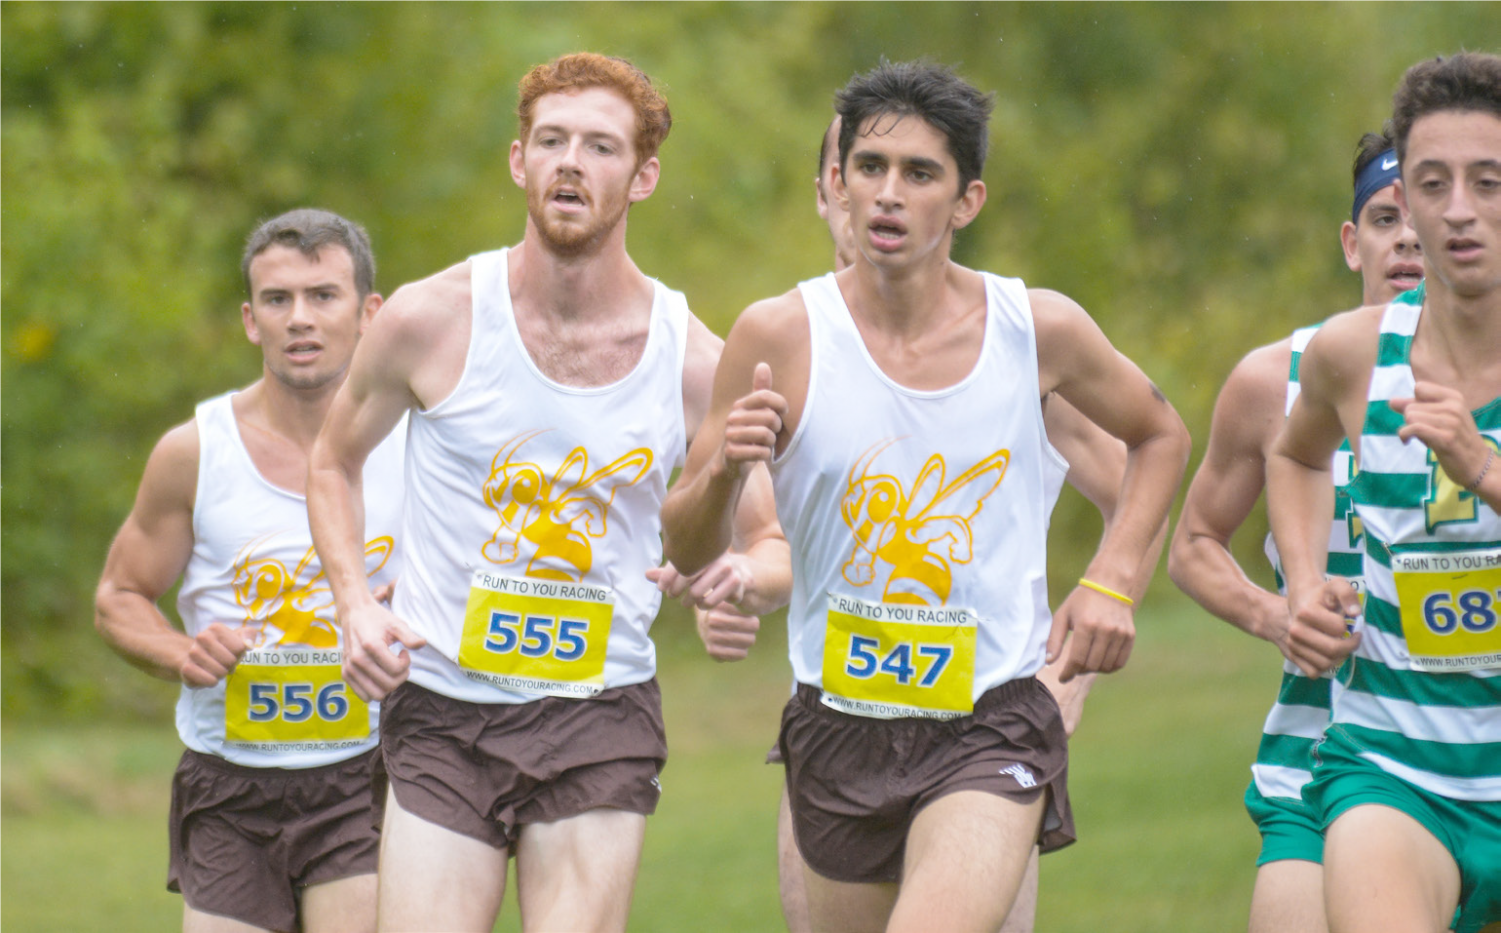 Men's cross-country finished 10 out of 16 teams at the Purple Valley Classic, a meet that featured a number of top teams, head coach Joseph Eby said.